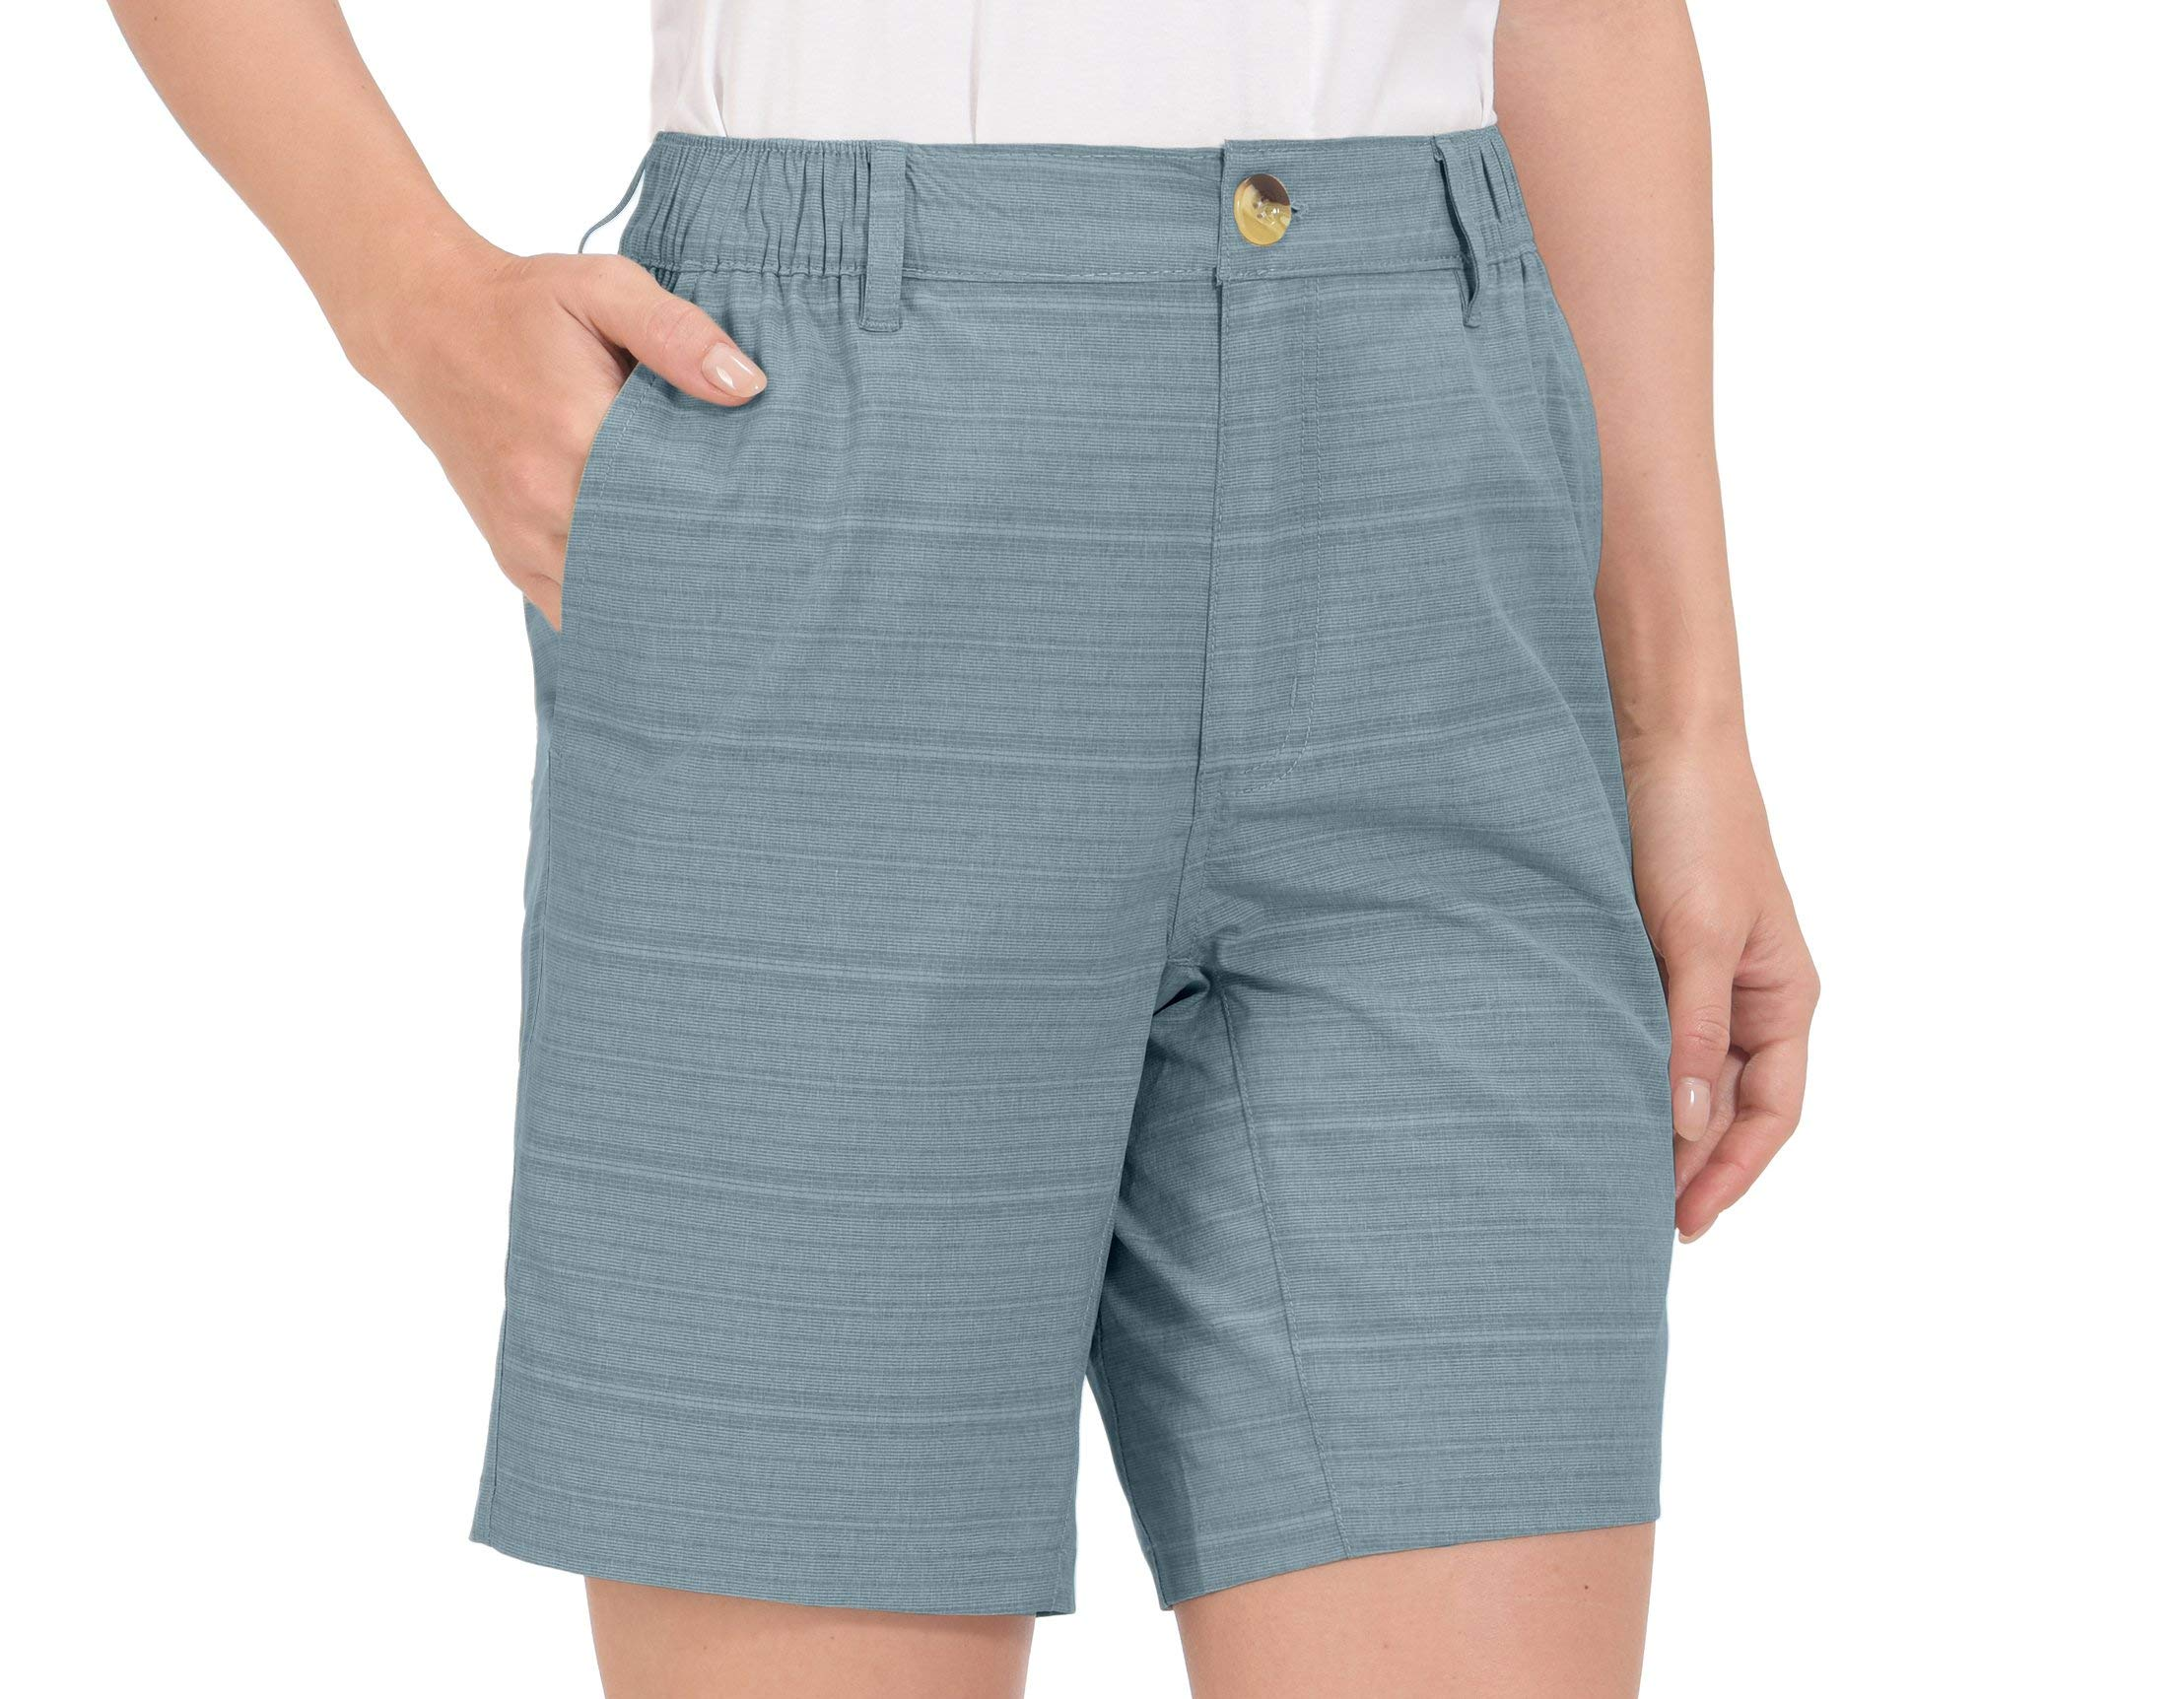 Little Donkey Andy Women's Quick Dry Stretch Bermuda Shorts with Elastic Waist for Golf Hiking